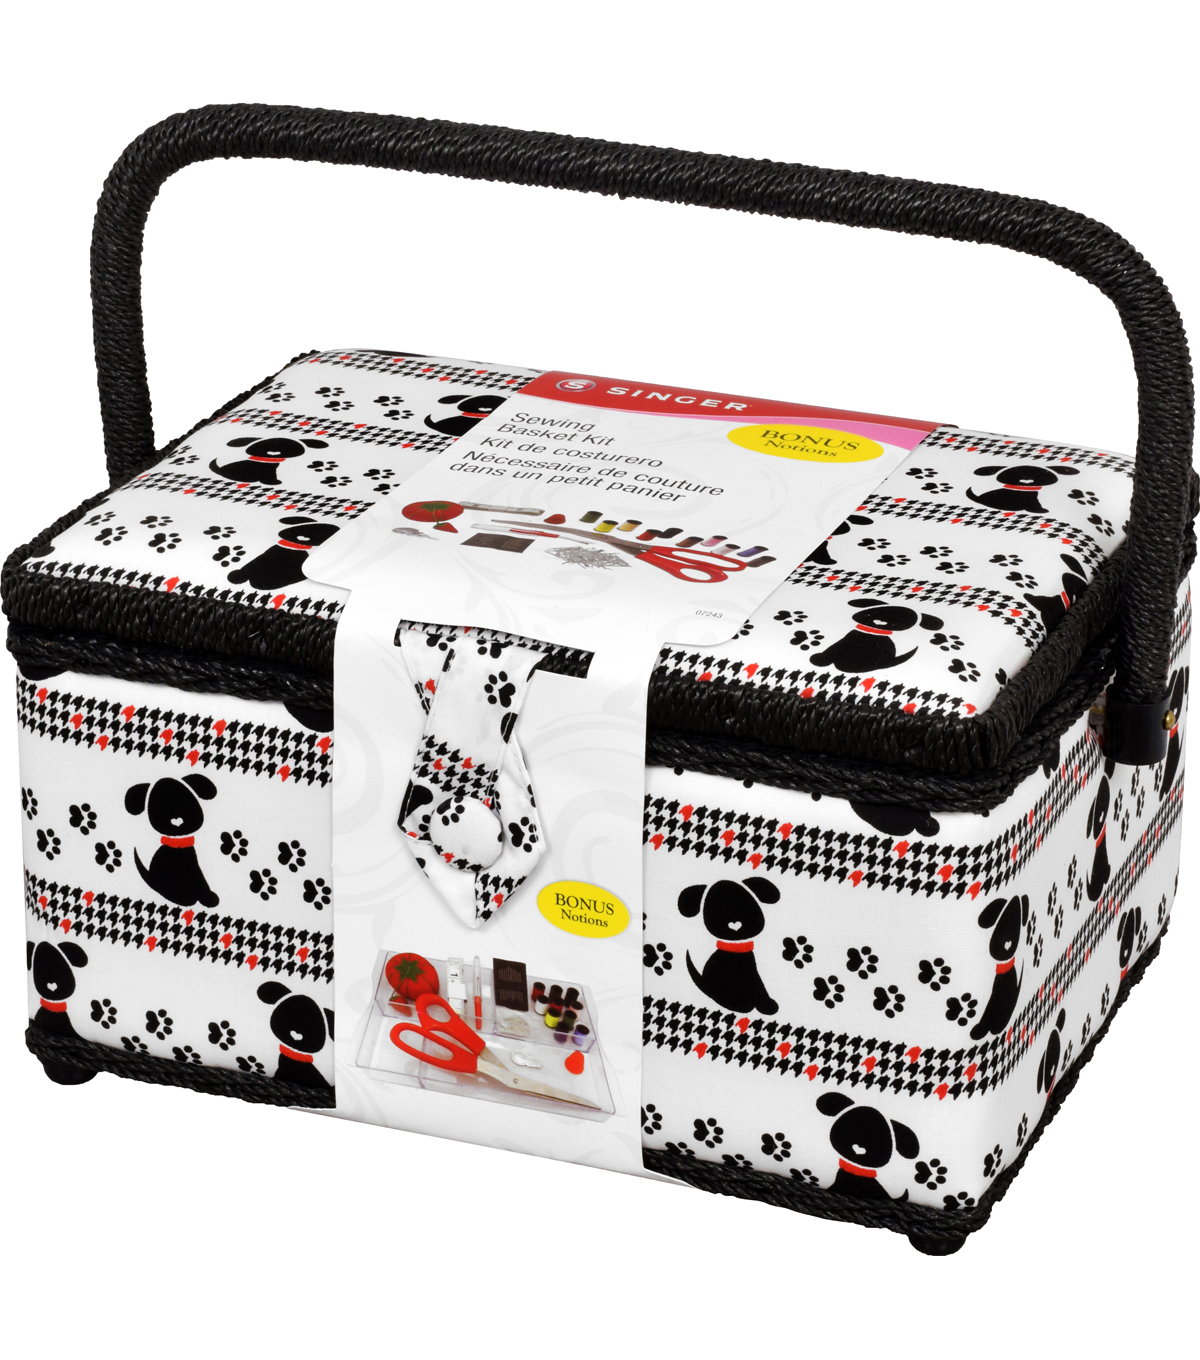 Singer® Large Sewing Basket with Notions Kit-Pet Trax Puppy